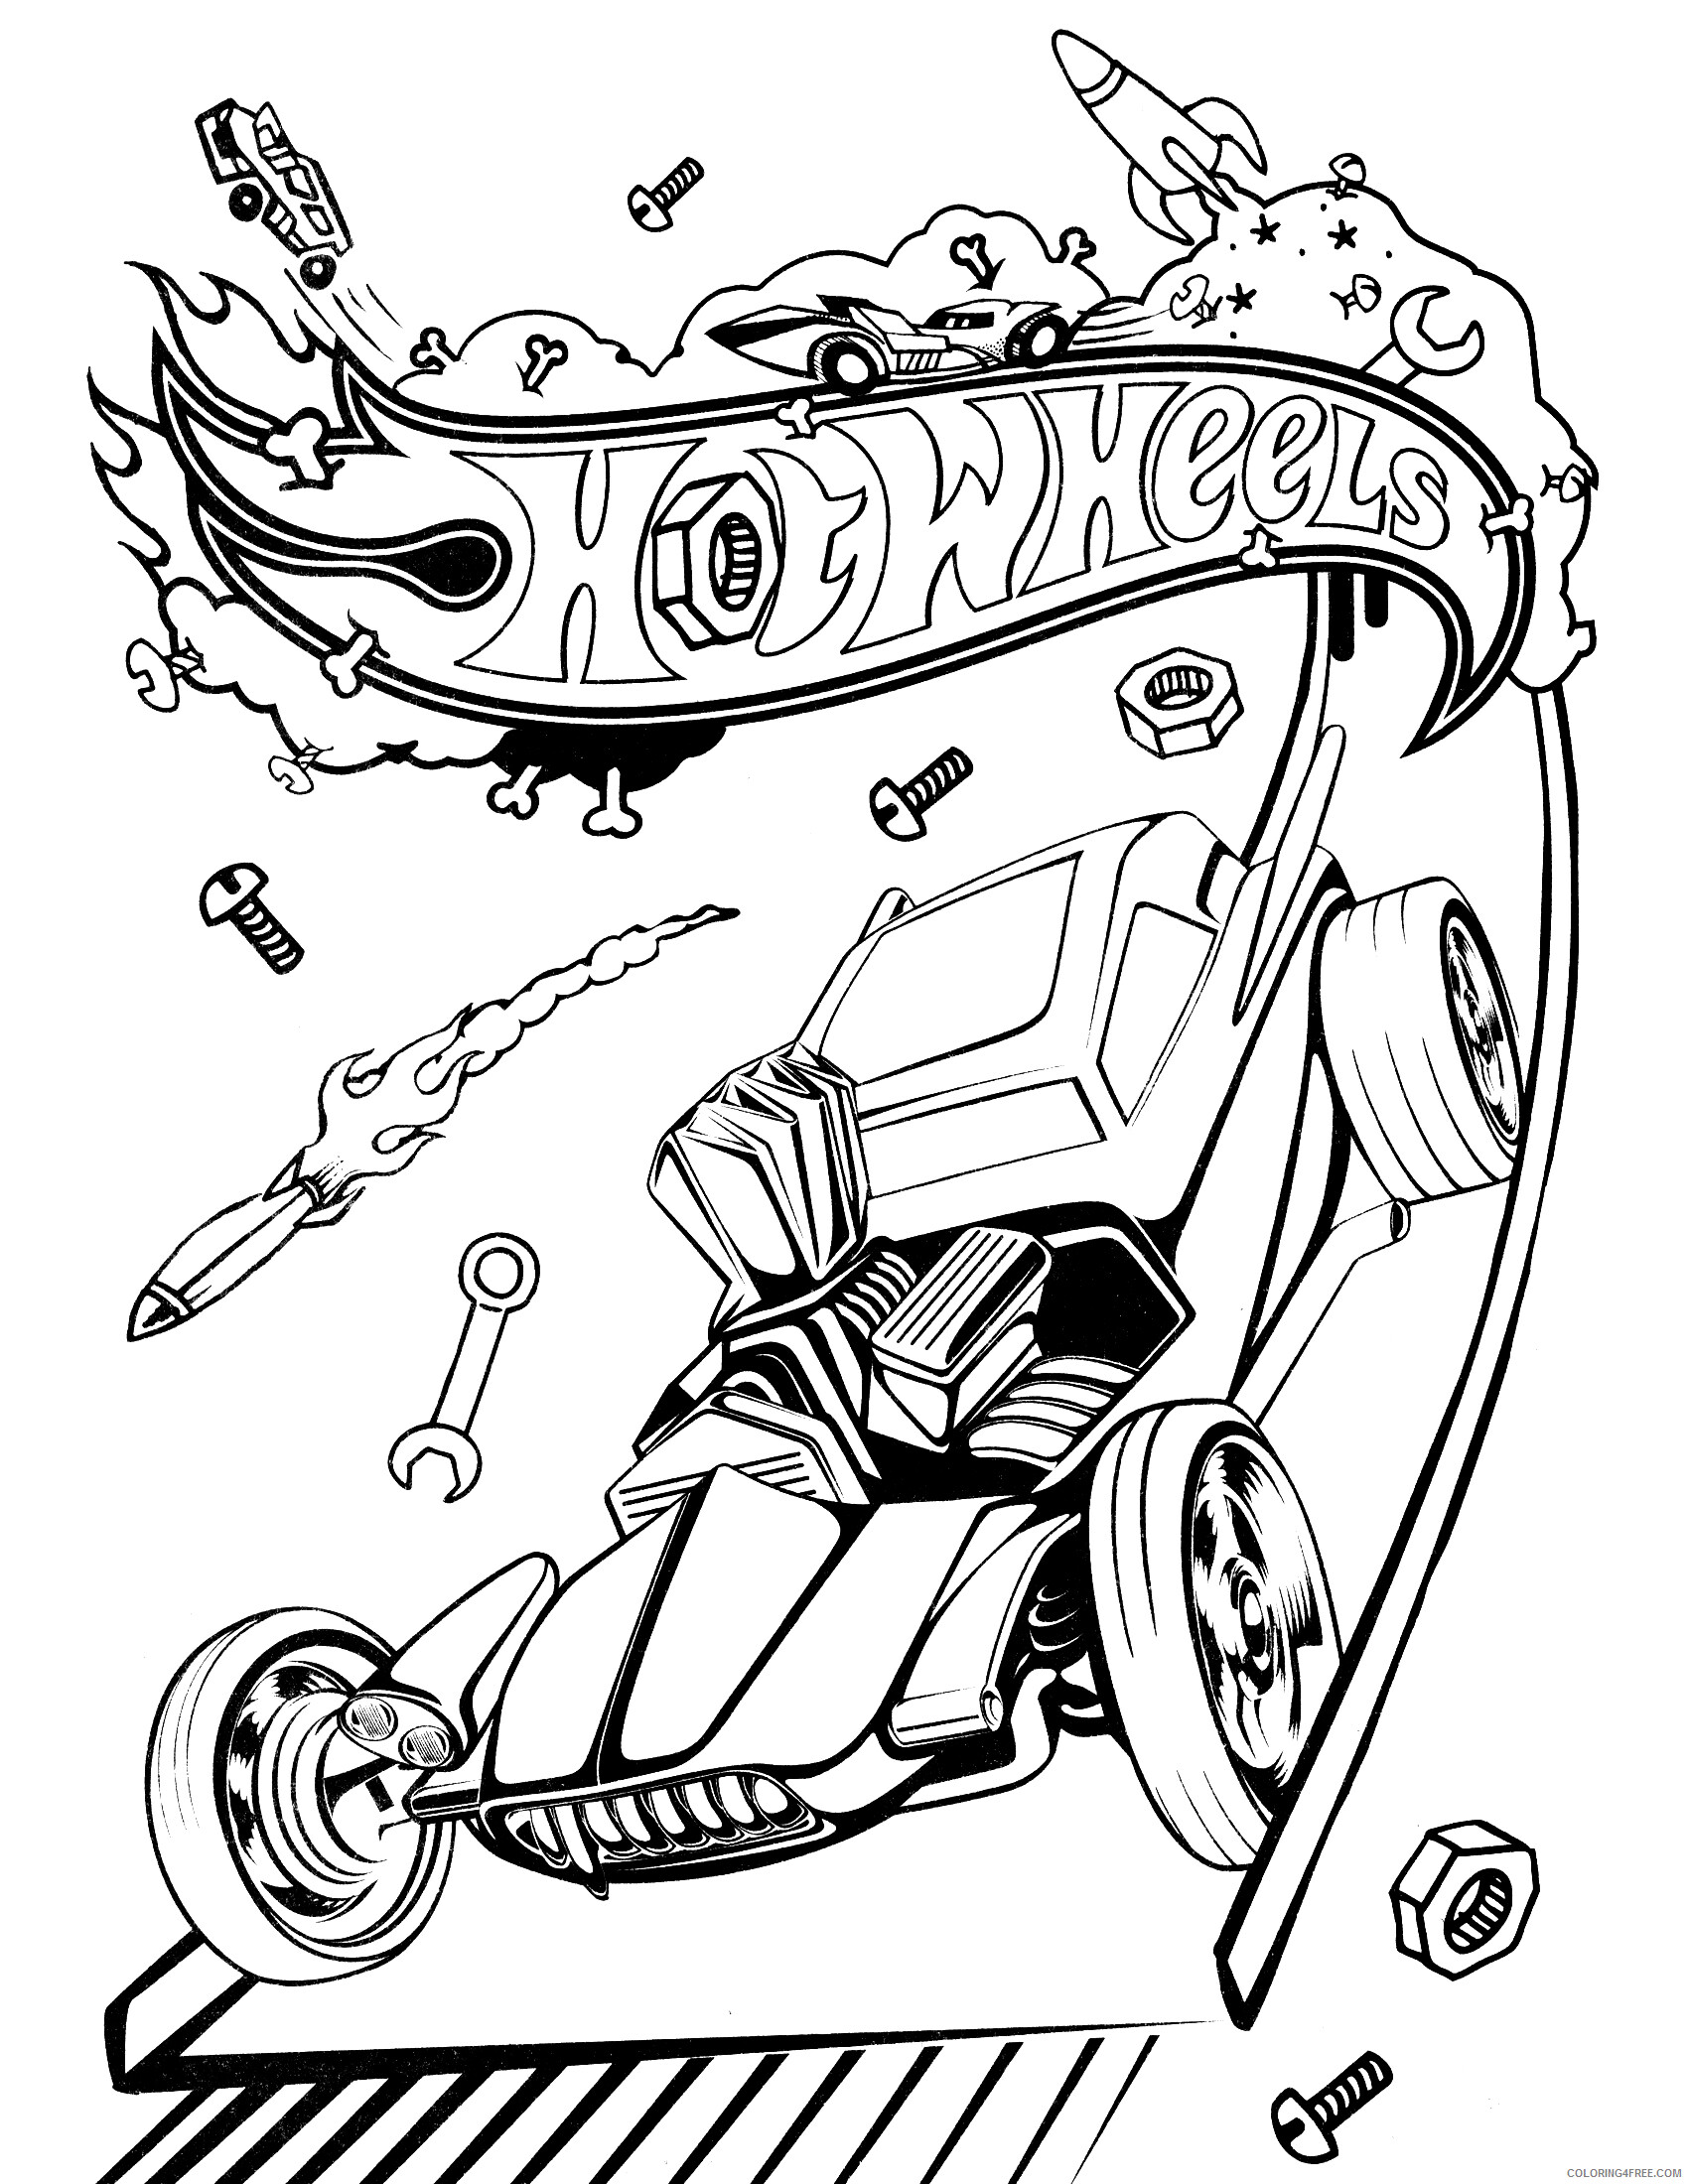 Hot Wheels Coloring Pages Hot Wheels Printable 2021 3400 Coloring4free